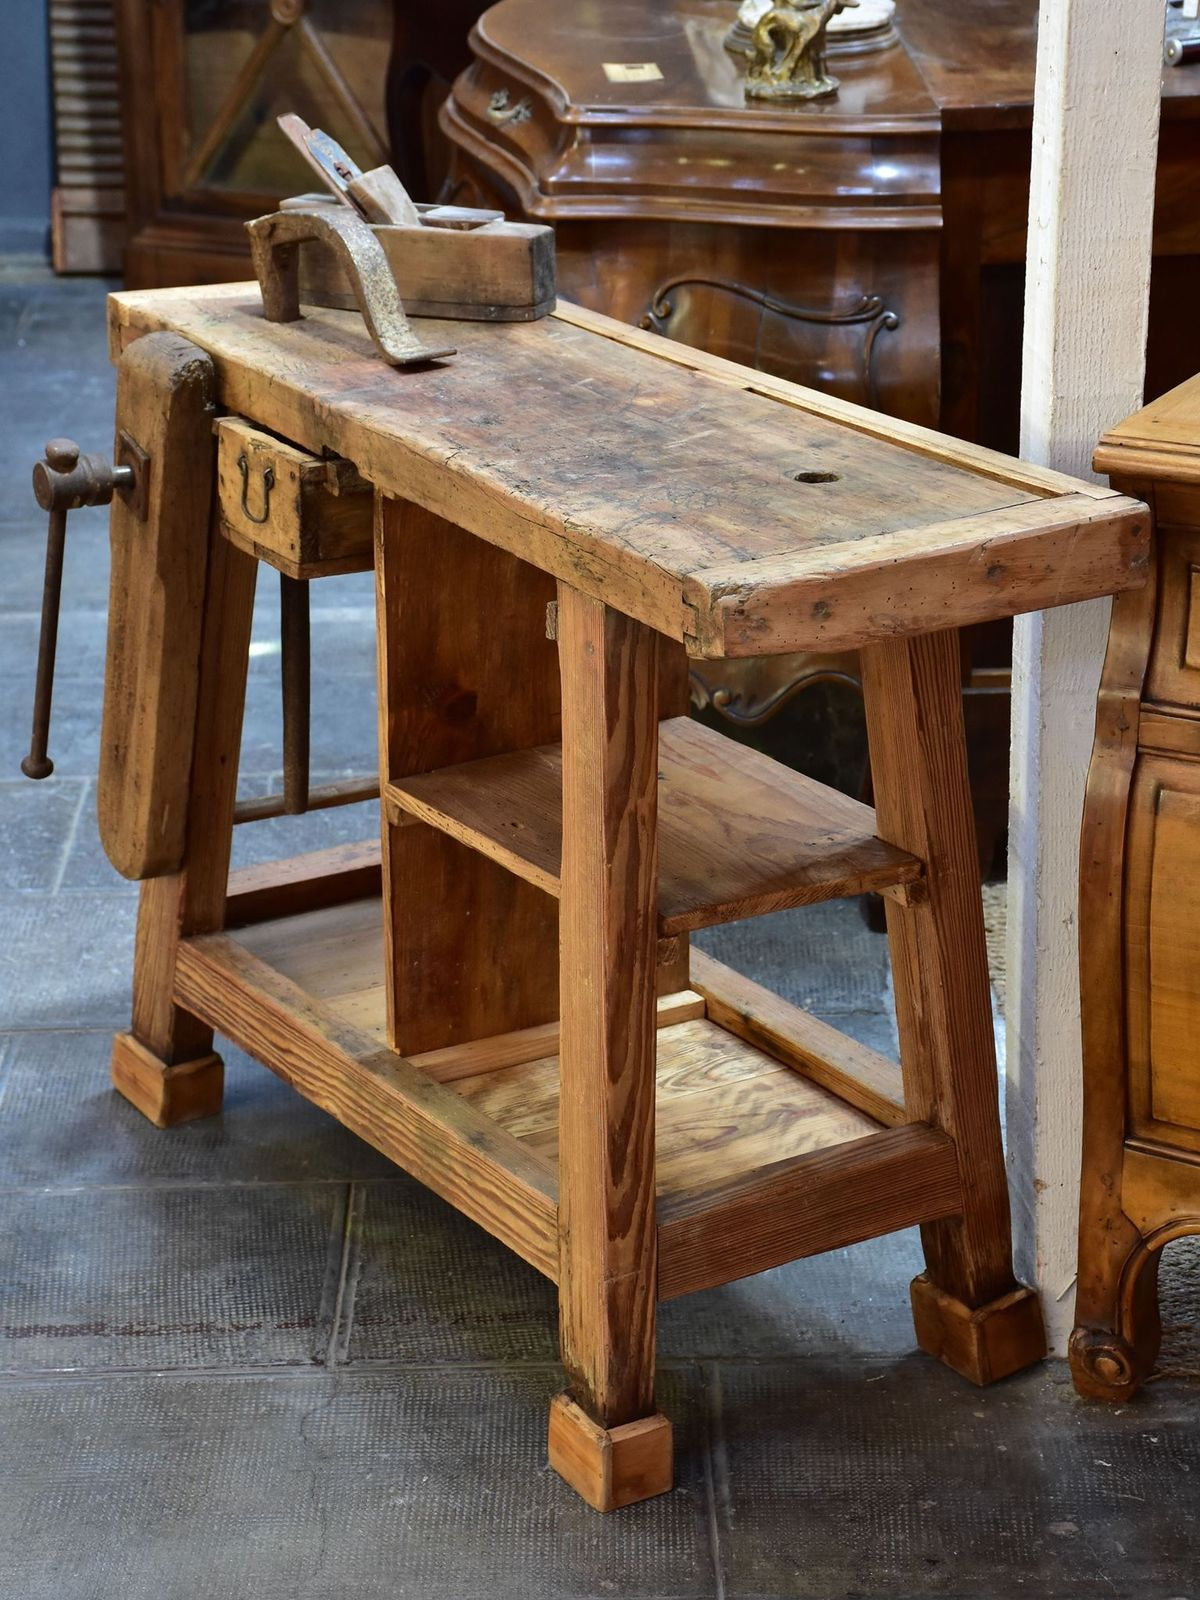 details about rustic vintage french wooden workbench